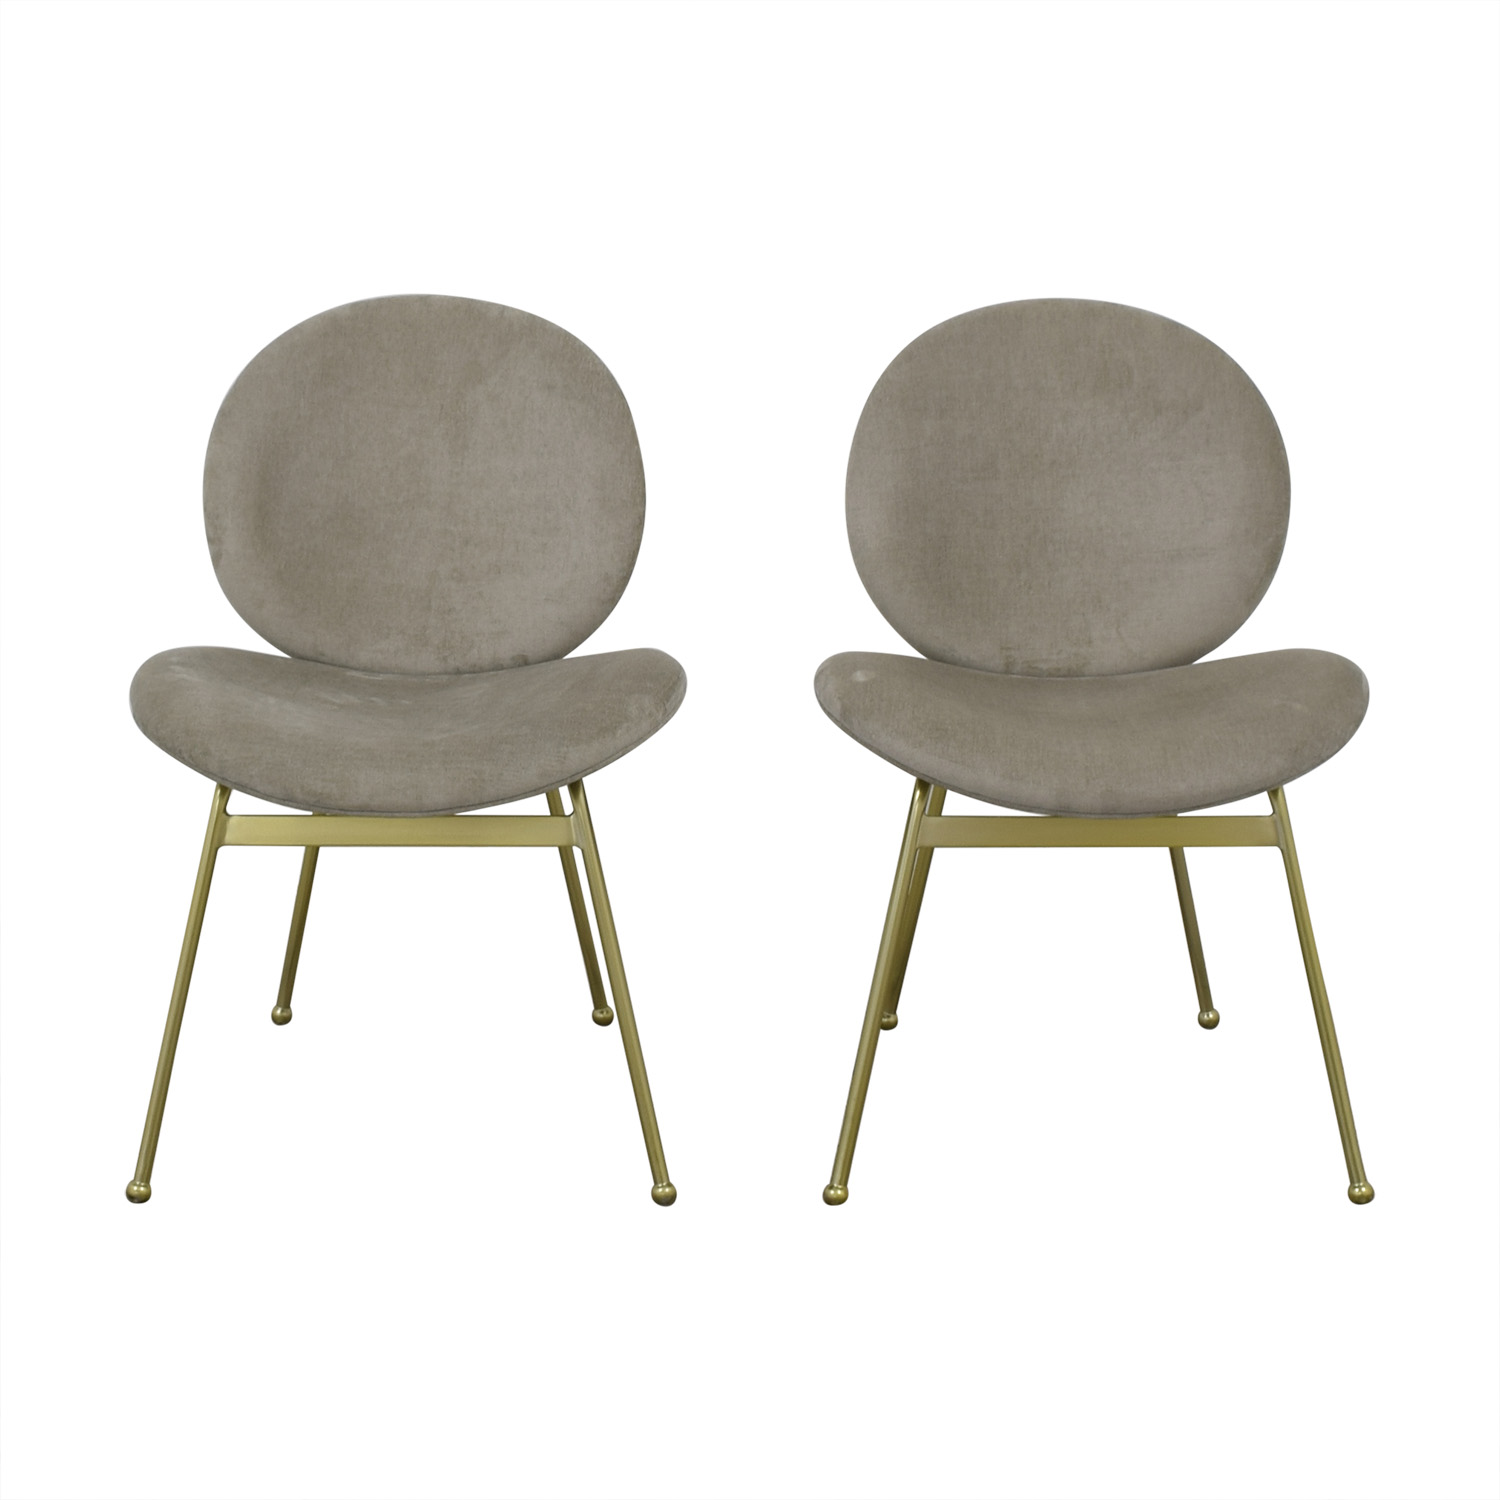 buy West Elm Upholstered Dining Chair West Elm Dining Chairs